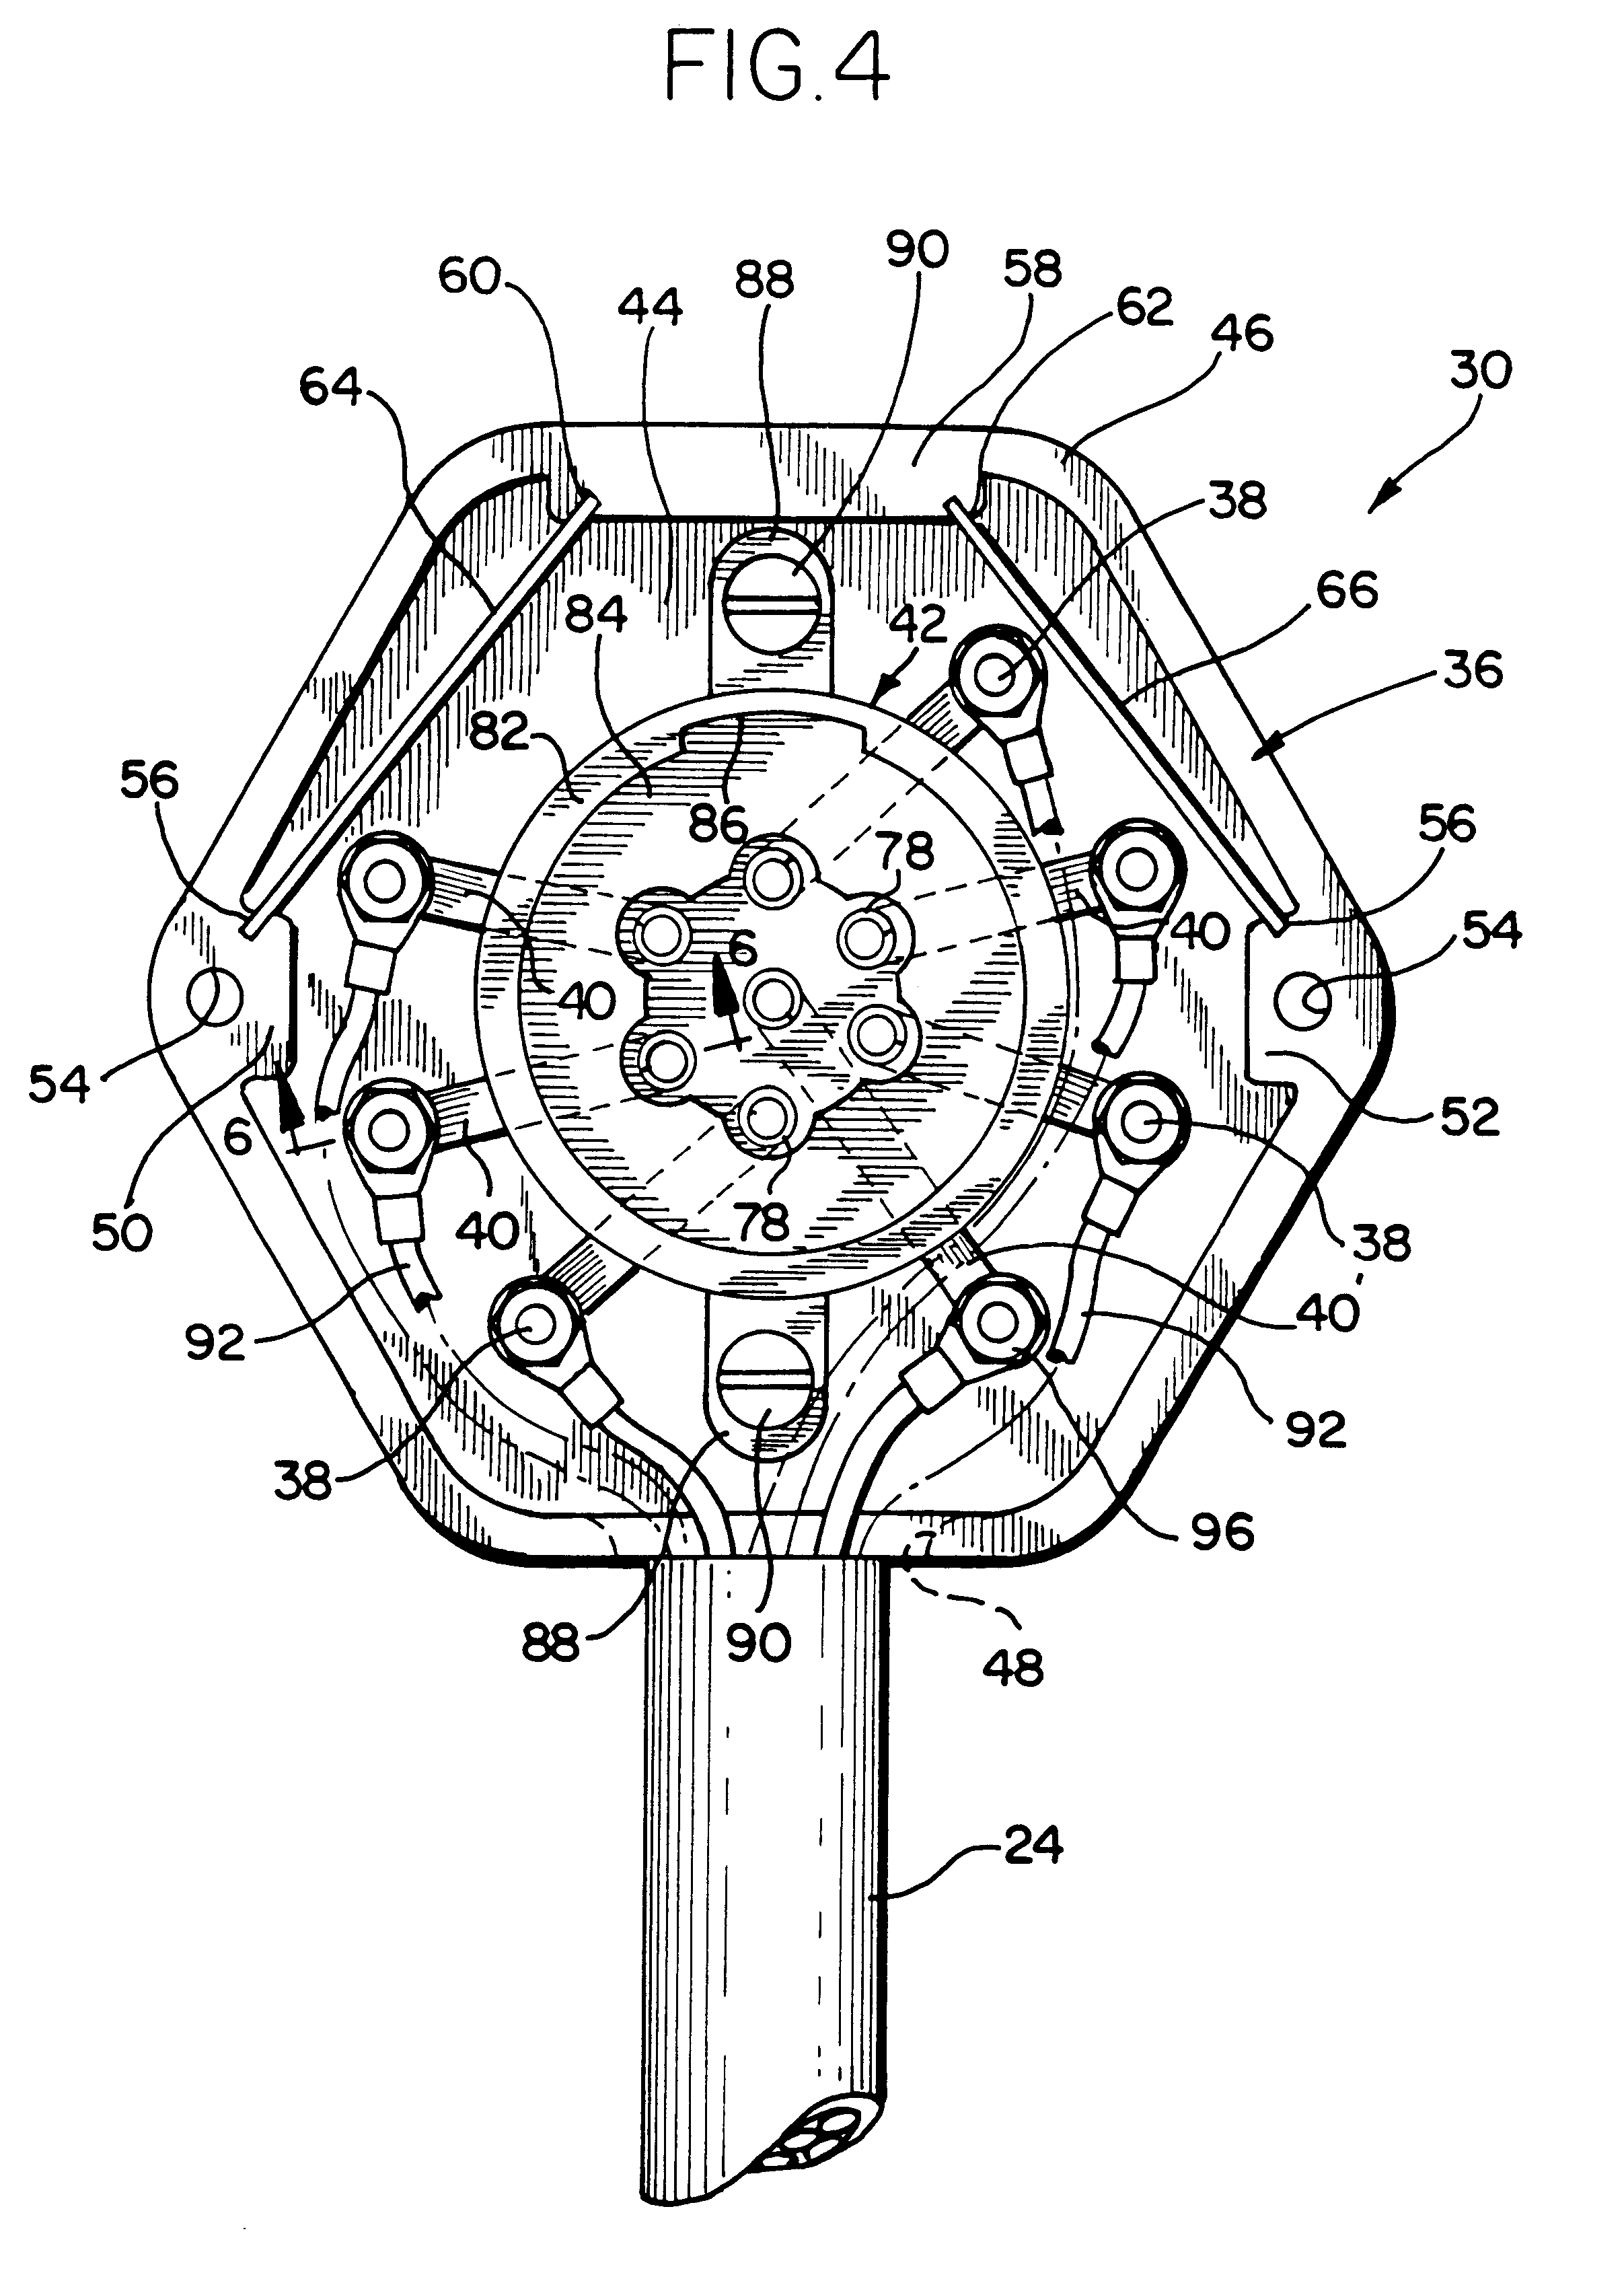 patent us6450833 - seven-way trailer connector